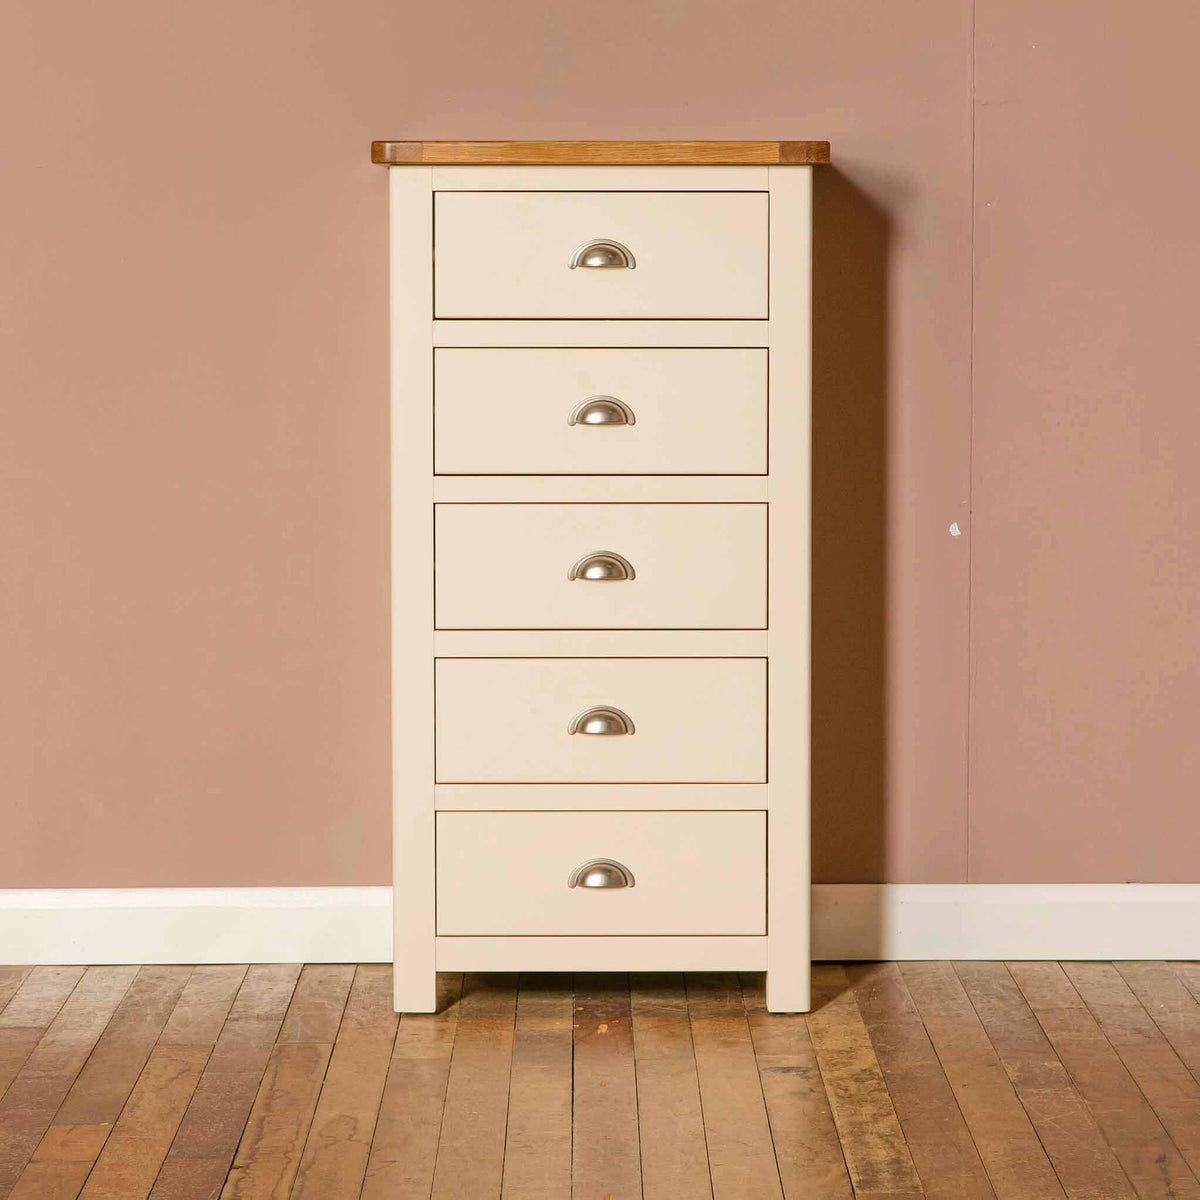 The Padstow Cream Wooden Tallboy Chest of Drawers with Oak Top from Roseland Furniture